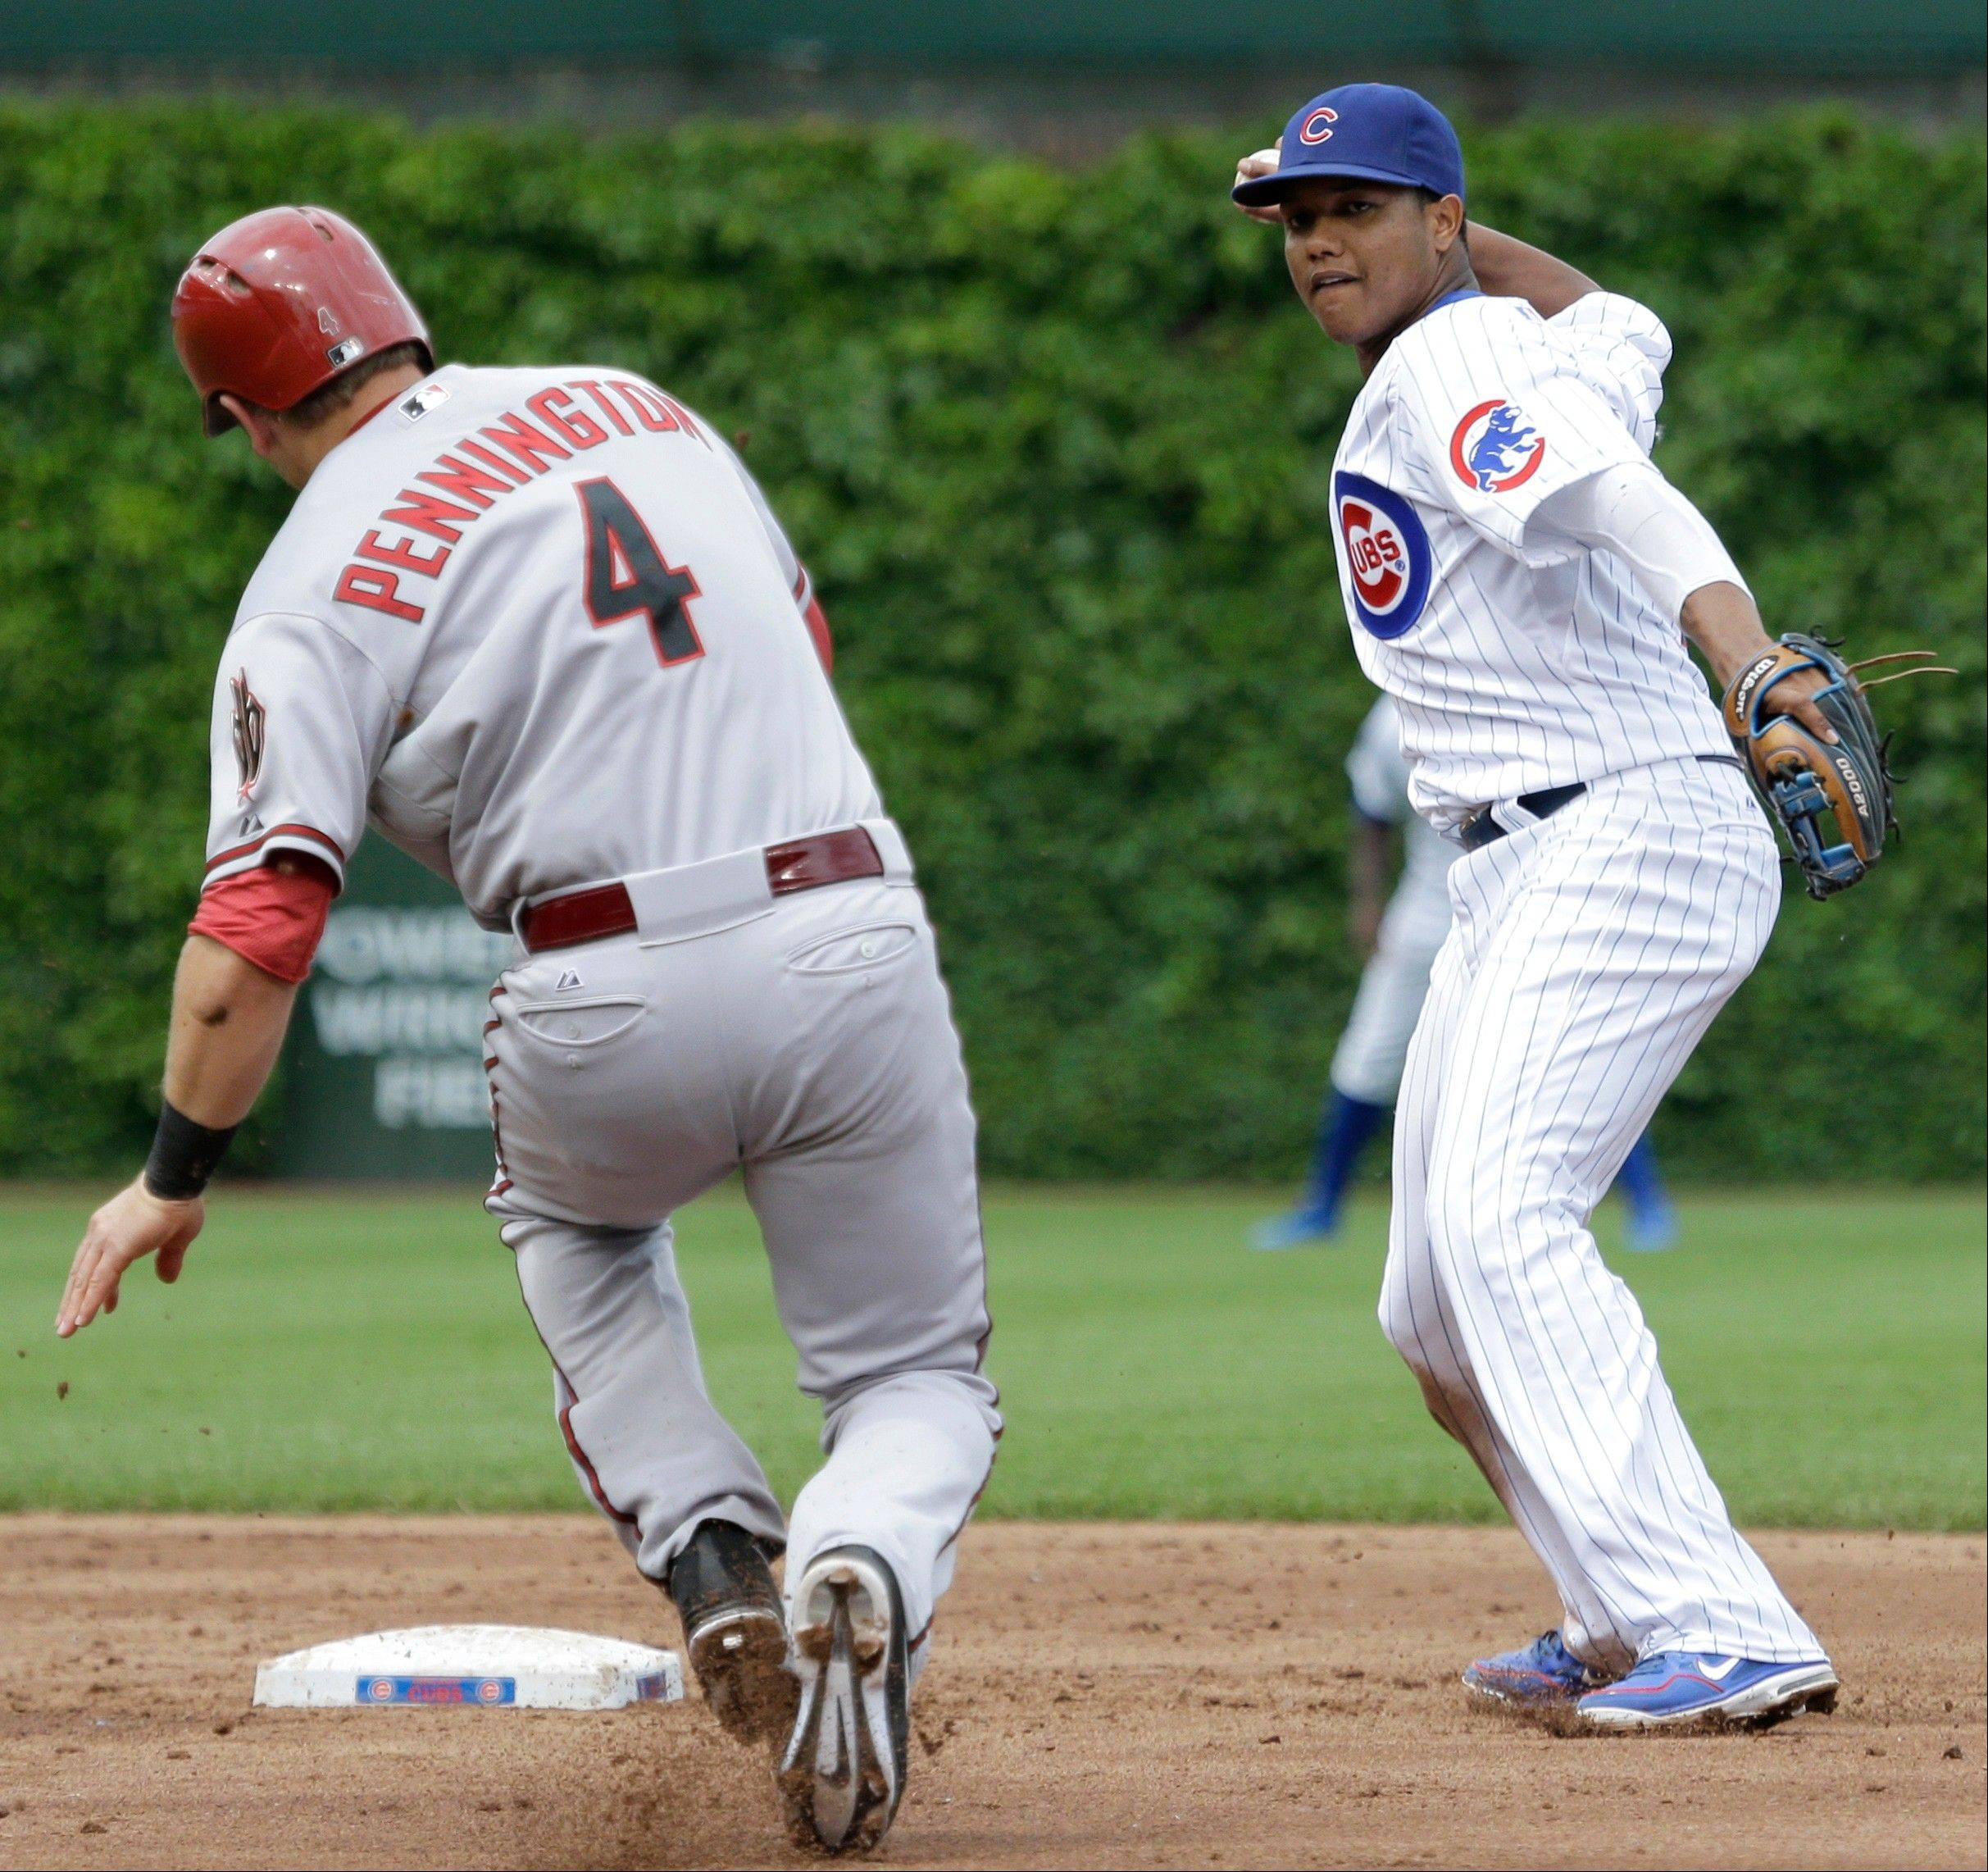 Chicago Cubs shortstop Starlin Castro, right, throws to first after forcing out Arizona Diamondbacks' Cliff Pennington during the third inning of a baseball game, Friday, May 31, 2013, in Chicago. Wade Miley was out at first. (AP Photo/Nam Y. Huh)